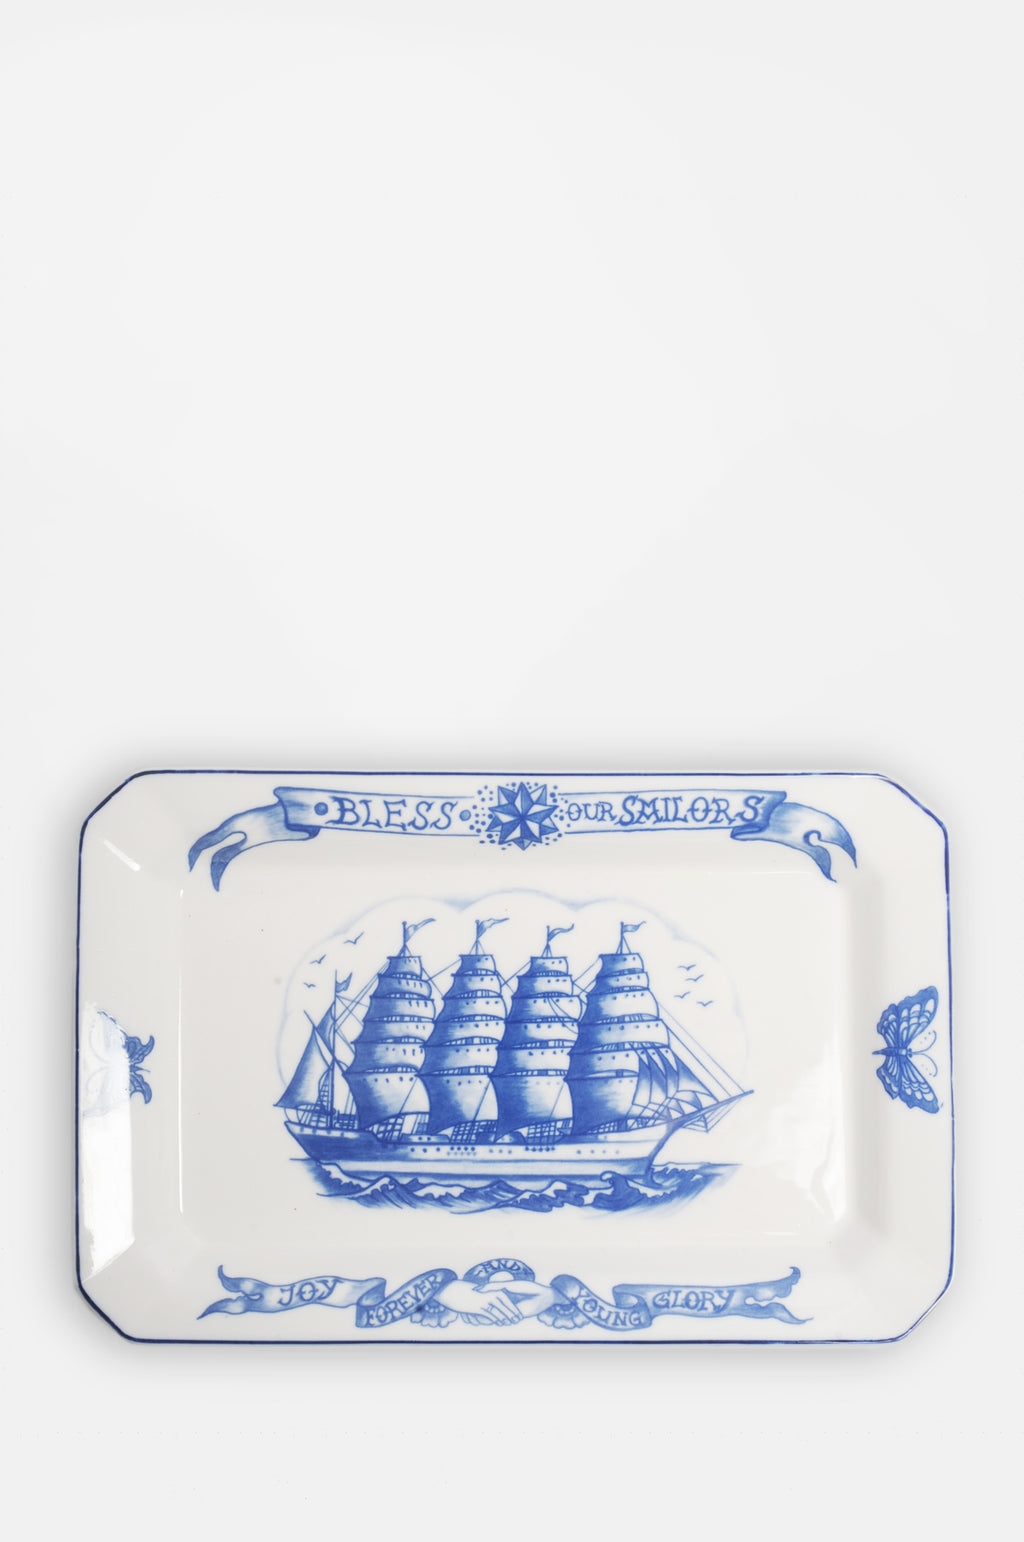 Bless Our Sailors Platter 34cm